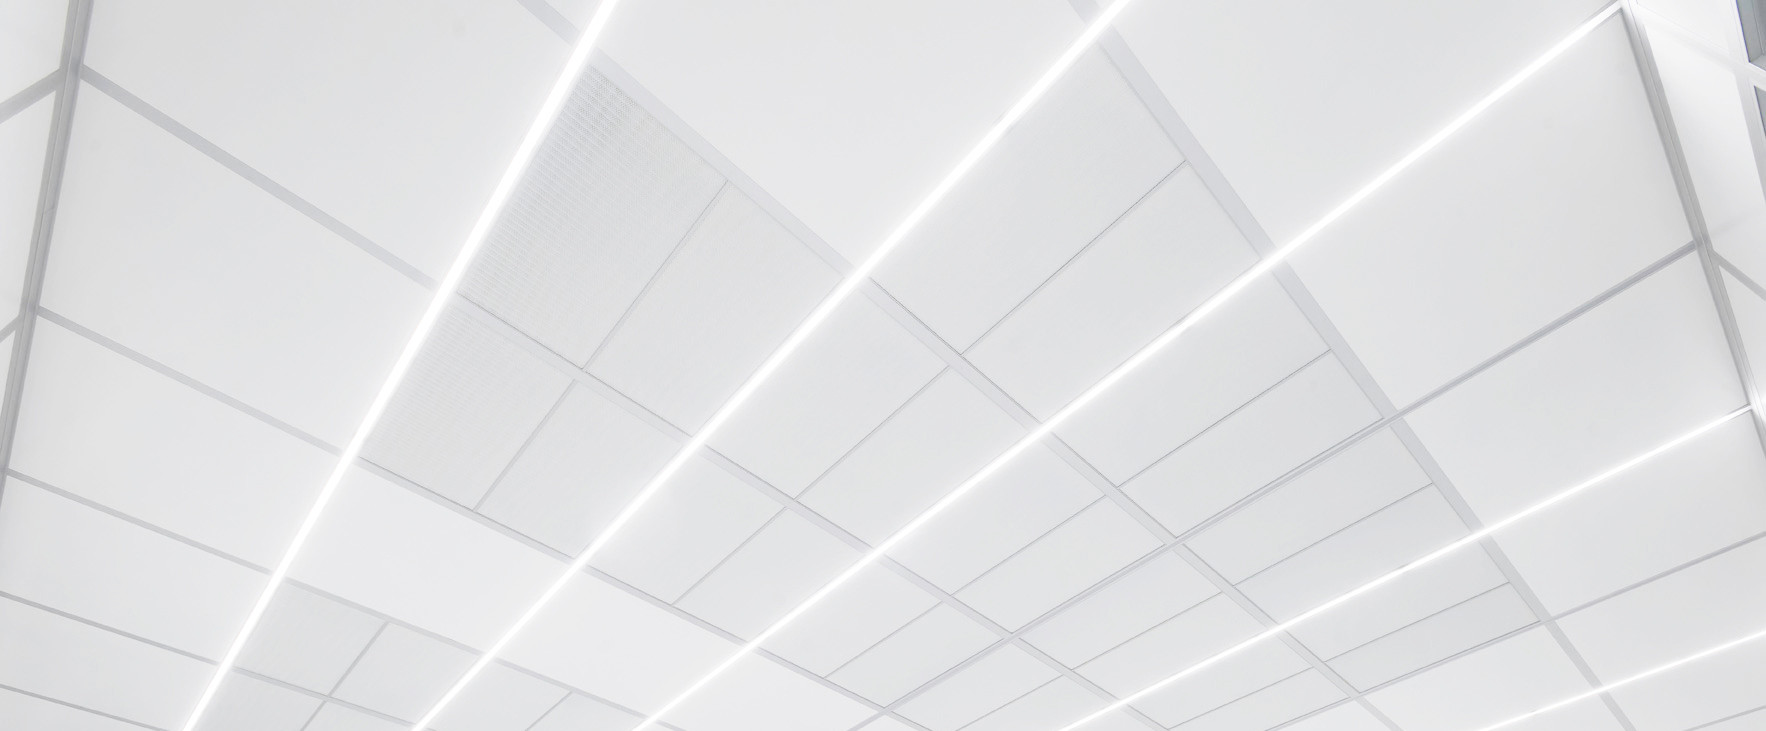 LED Technology in Cleanrooms